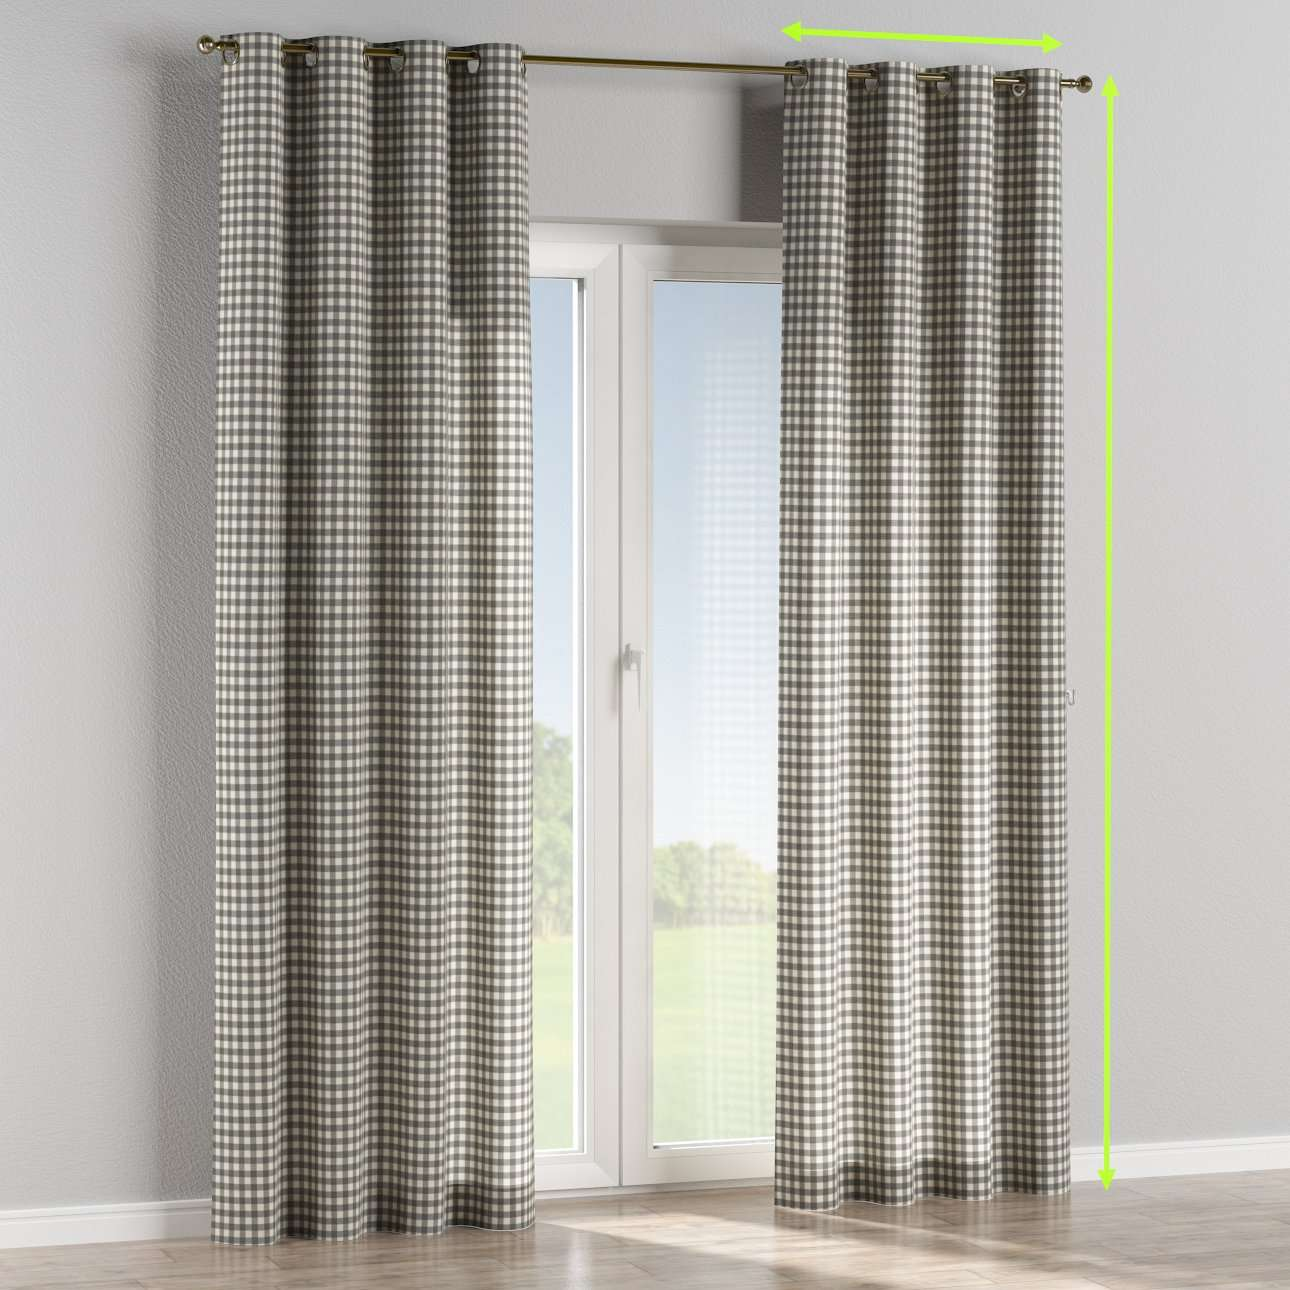 Eyelet lined curtains in collection Quadro, fabric: 136-11